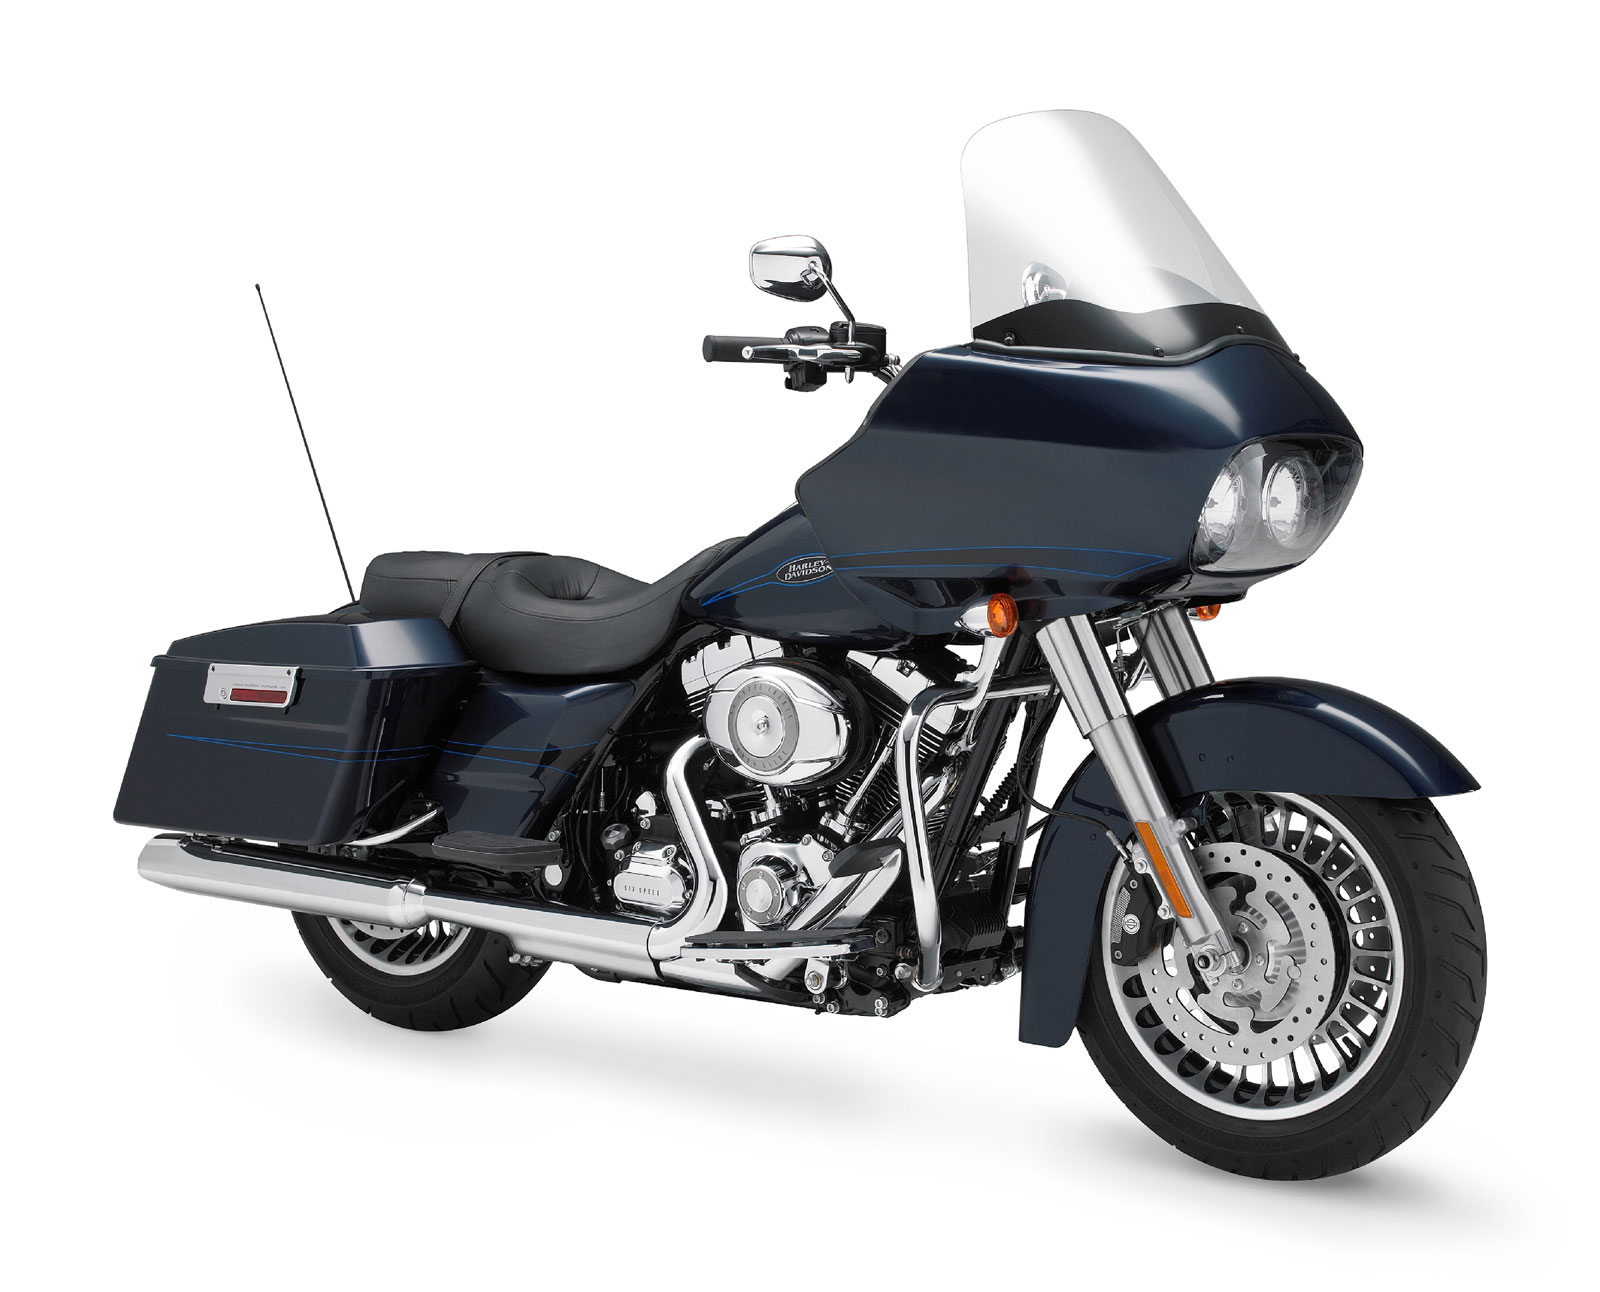 Harley Davidson Fltr Road Glide Photos And Comments Www Picautos Com